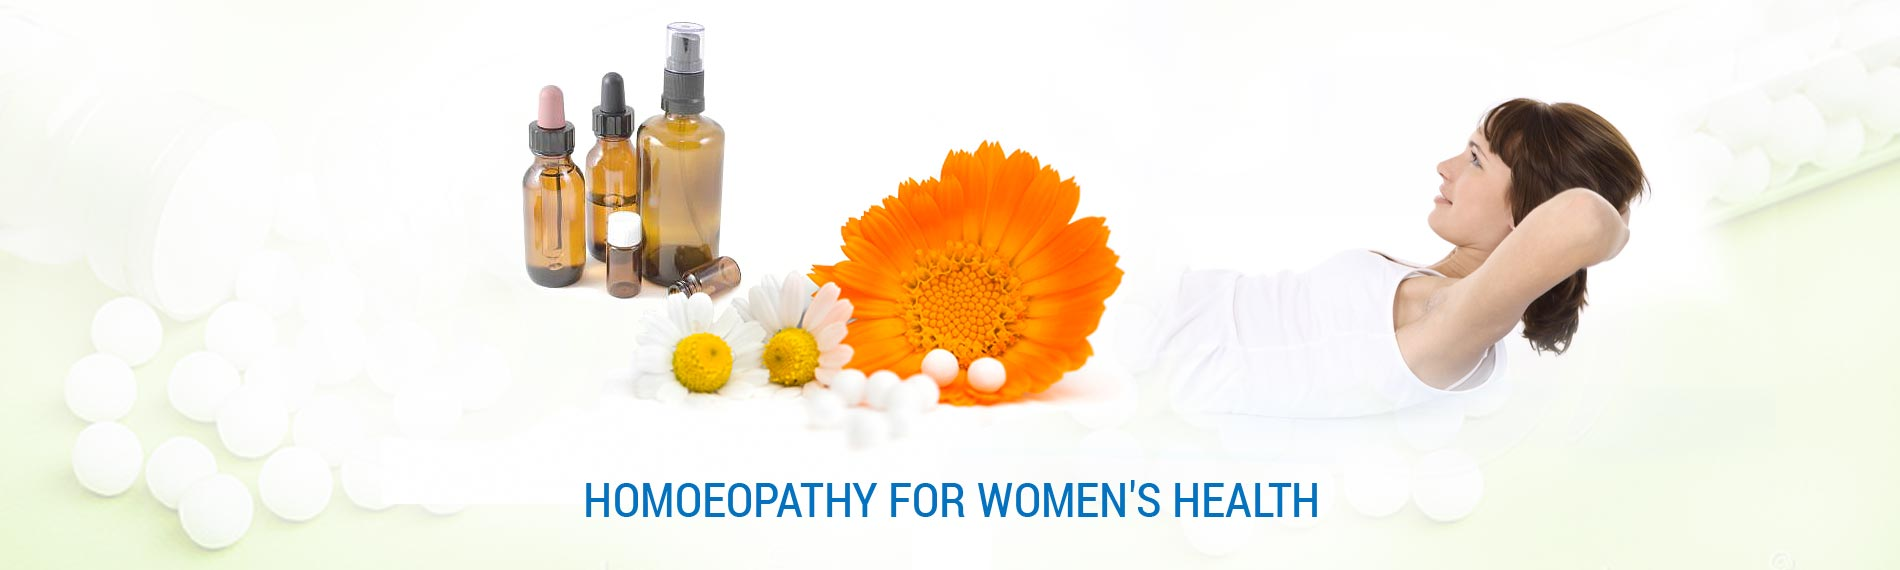 Homoeopathy for women's health